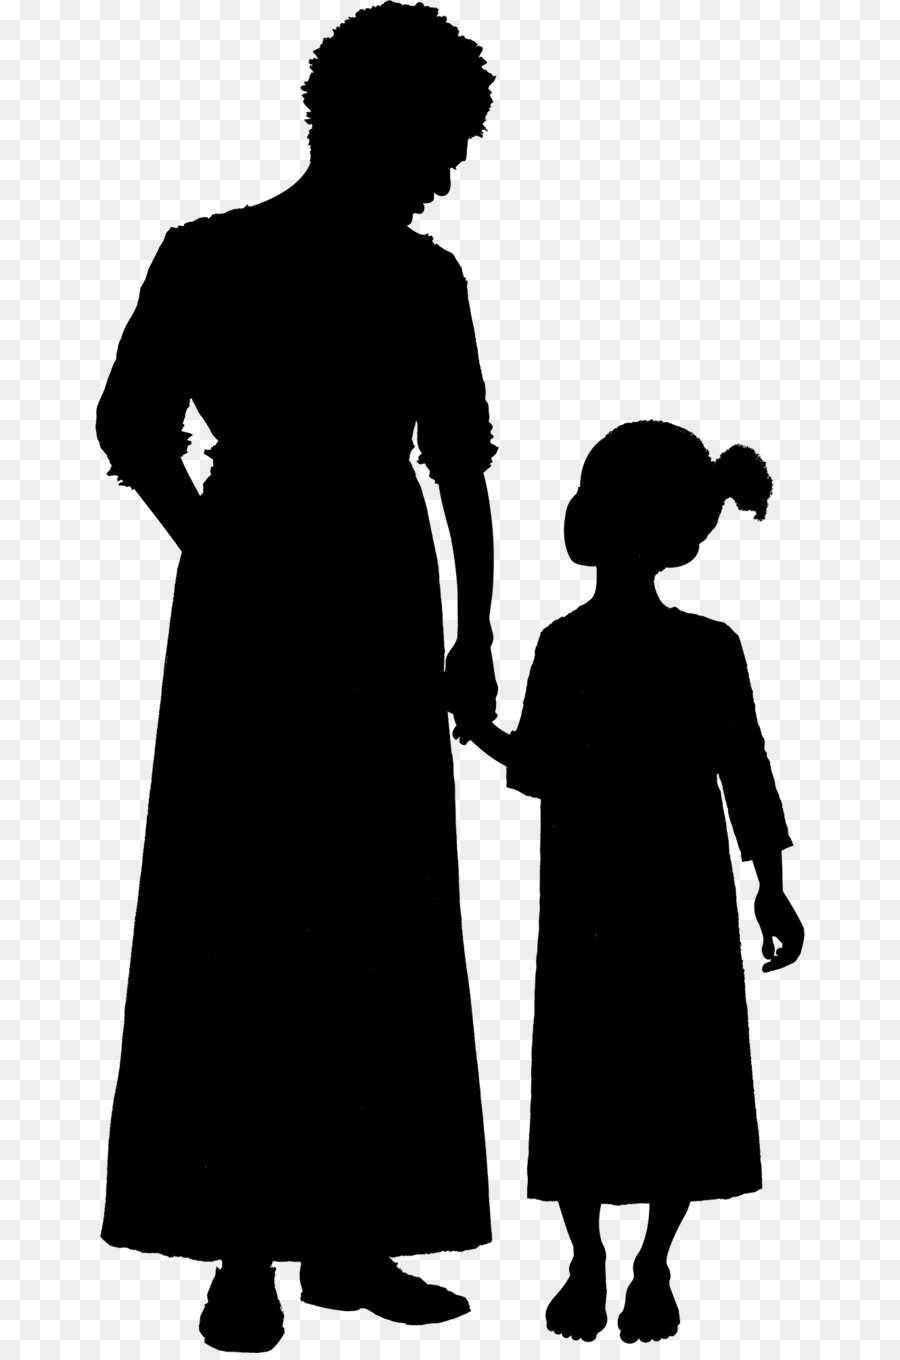 Silhouette Woman Child Clip art - old woman - Old Woman PNG Black And White